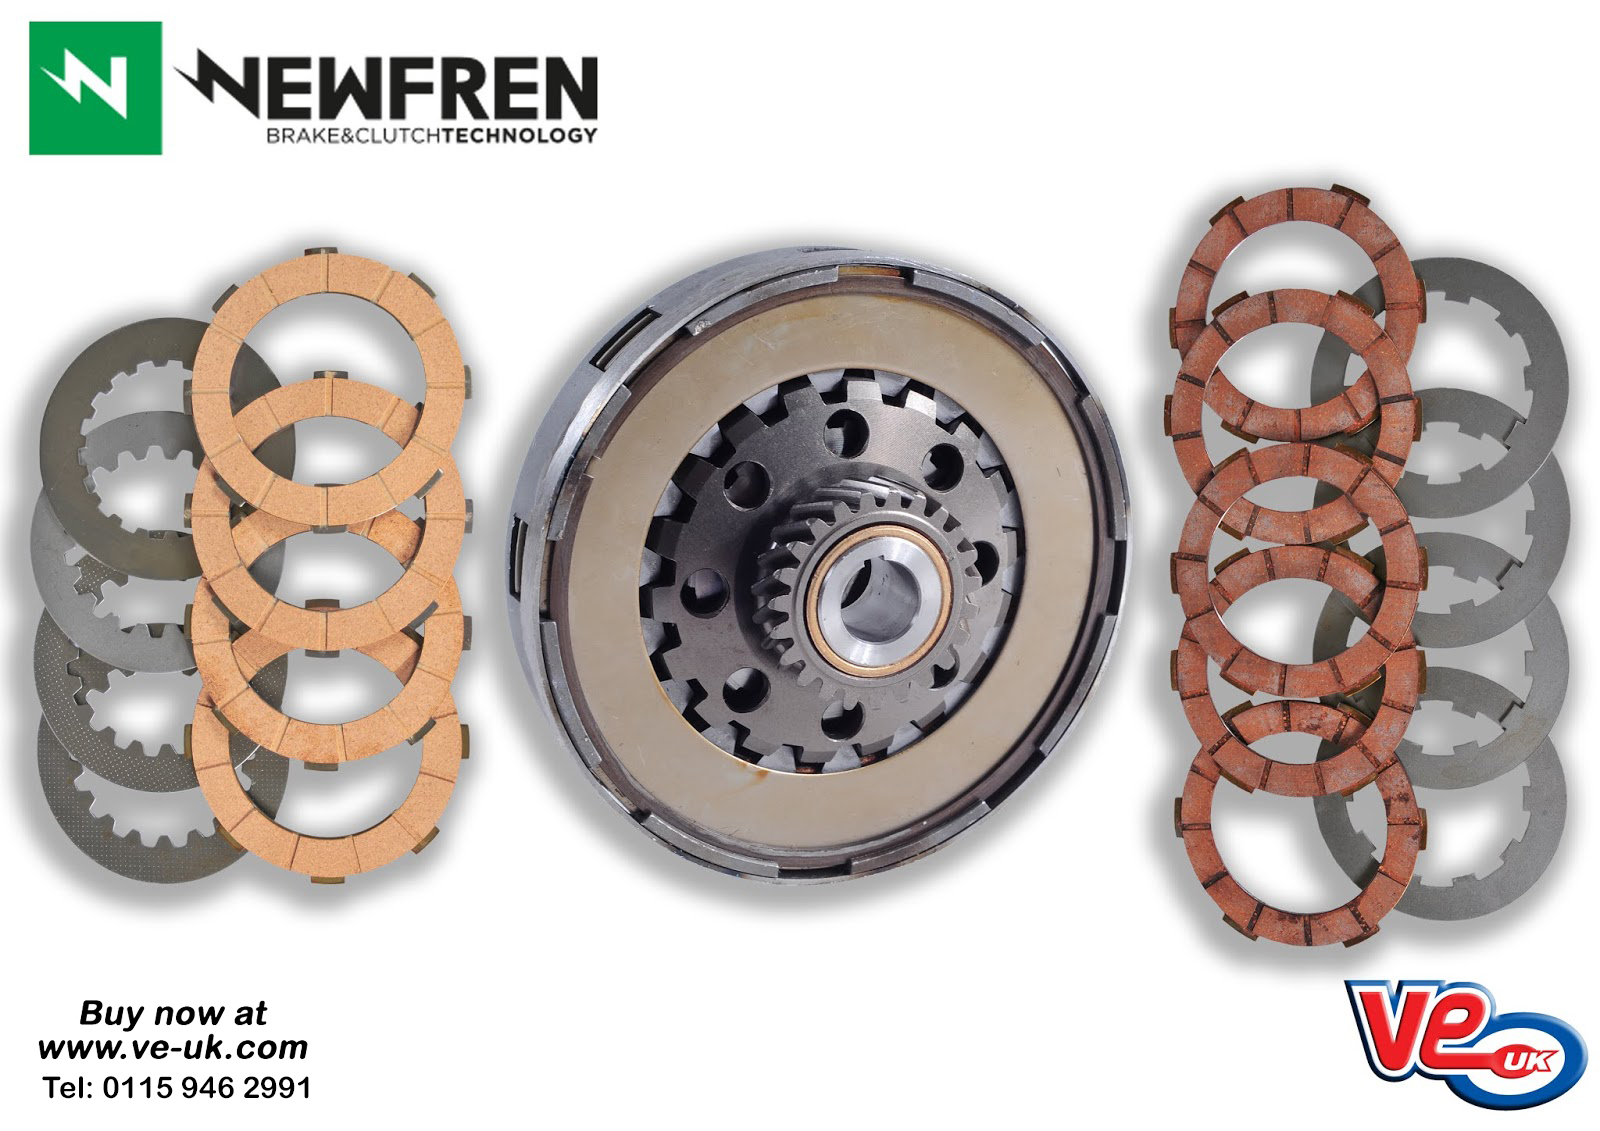 Newfren Classic Scooter Clutch Plates